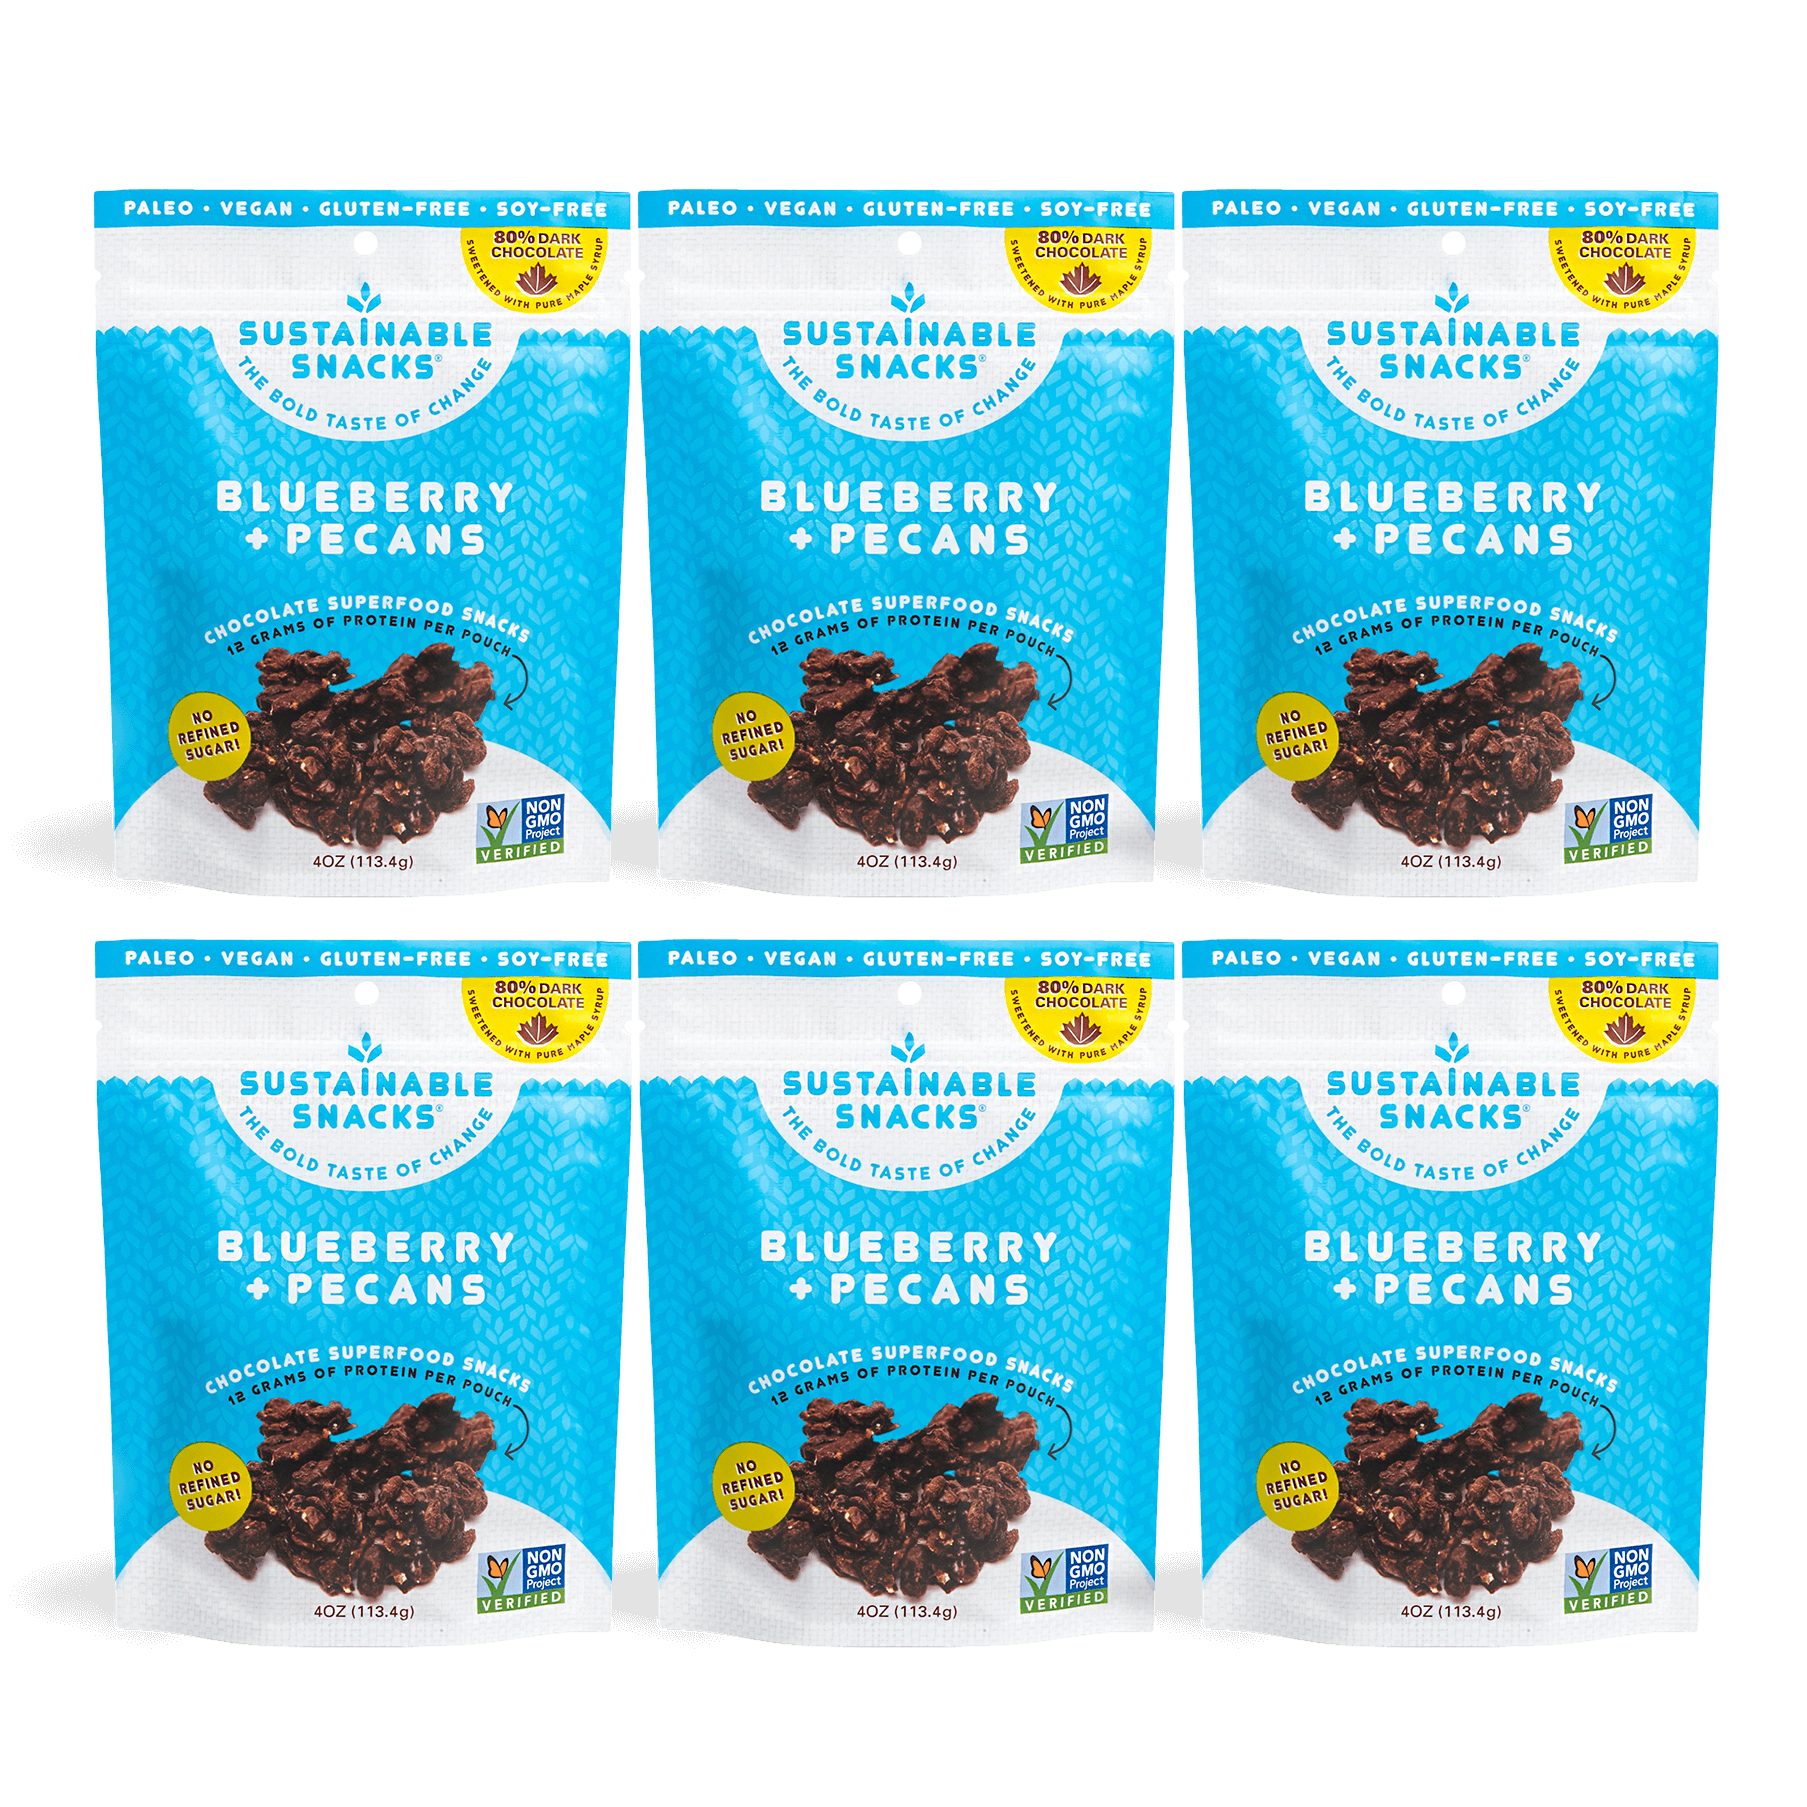 Blueberry + Pecans Snacks 6 Pack by Sustainable Snacks